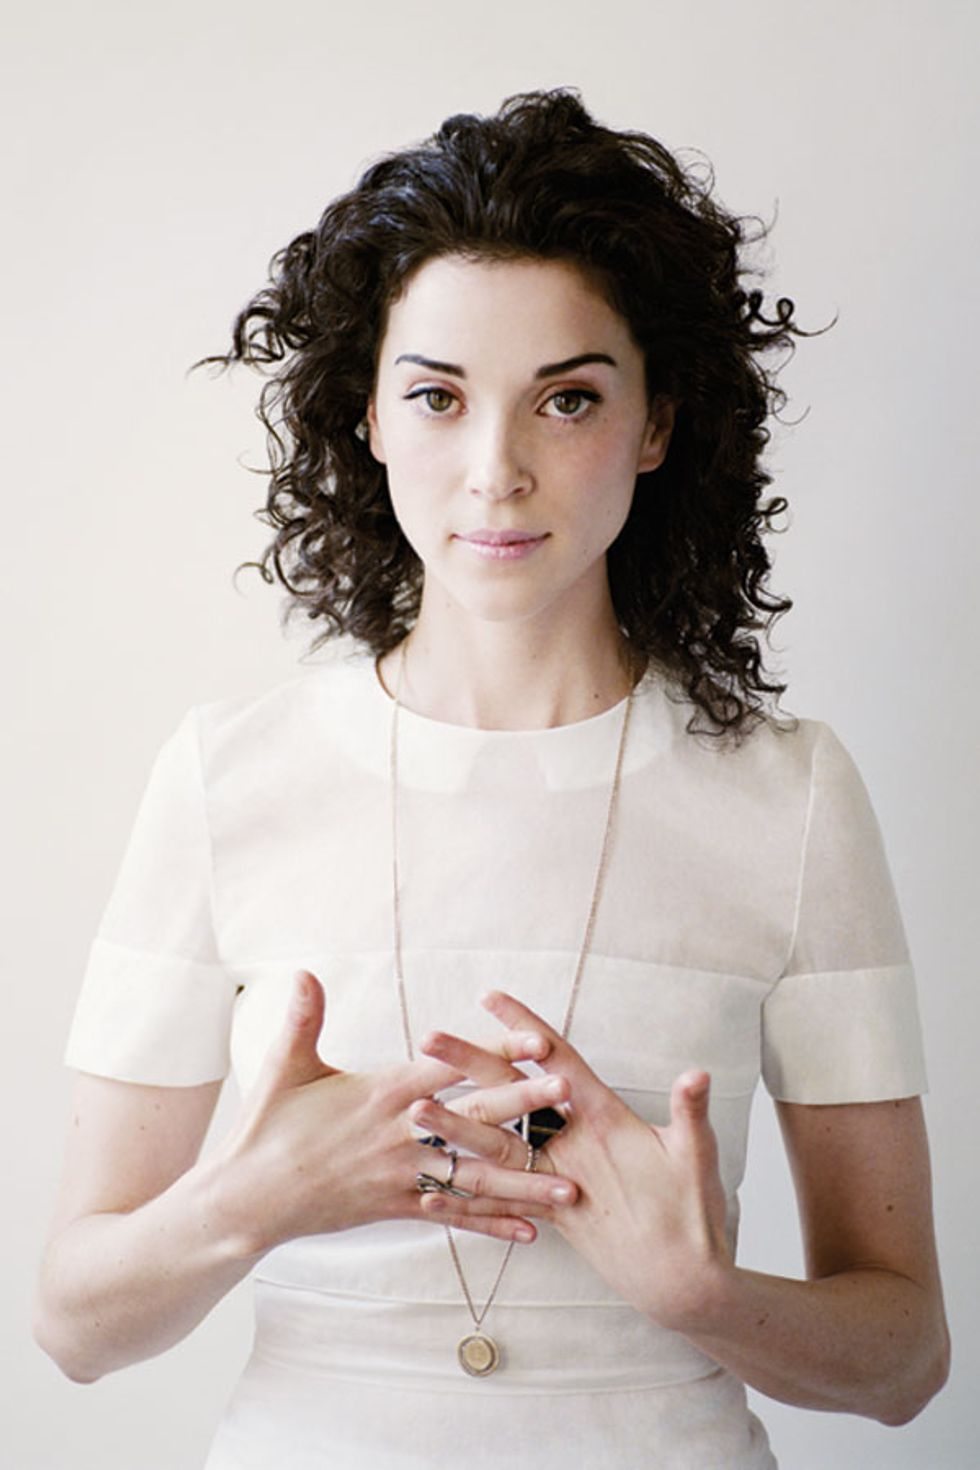 Being St. Vincent